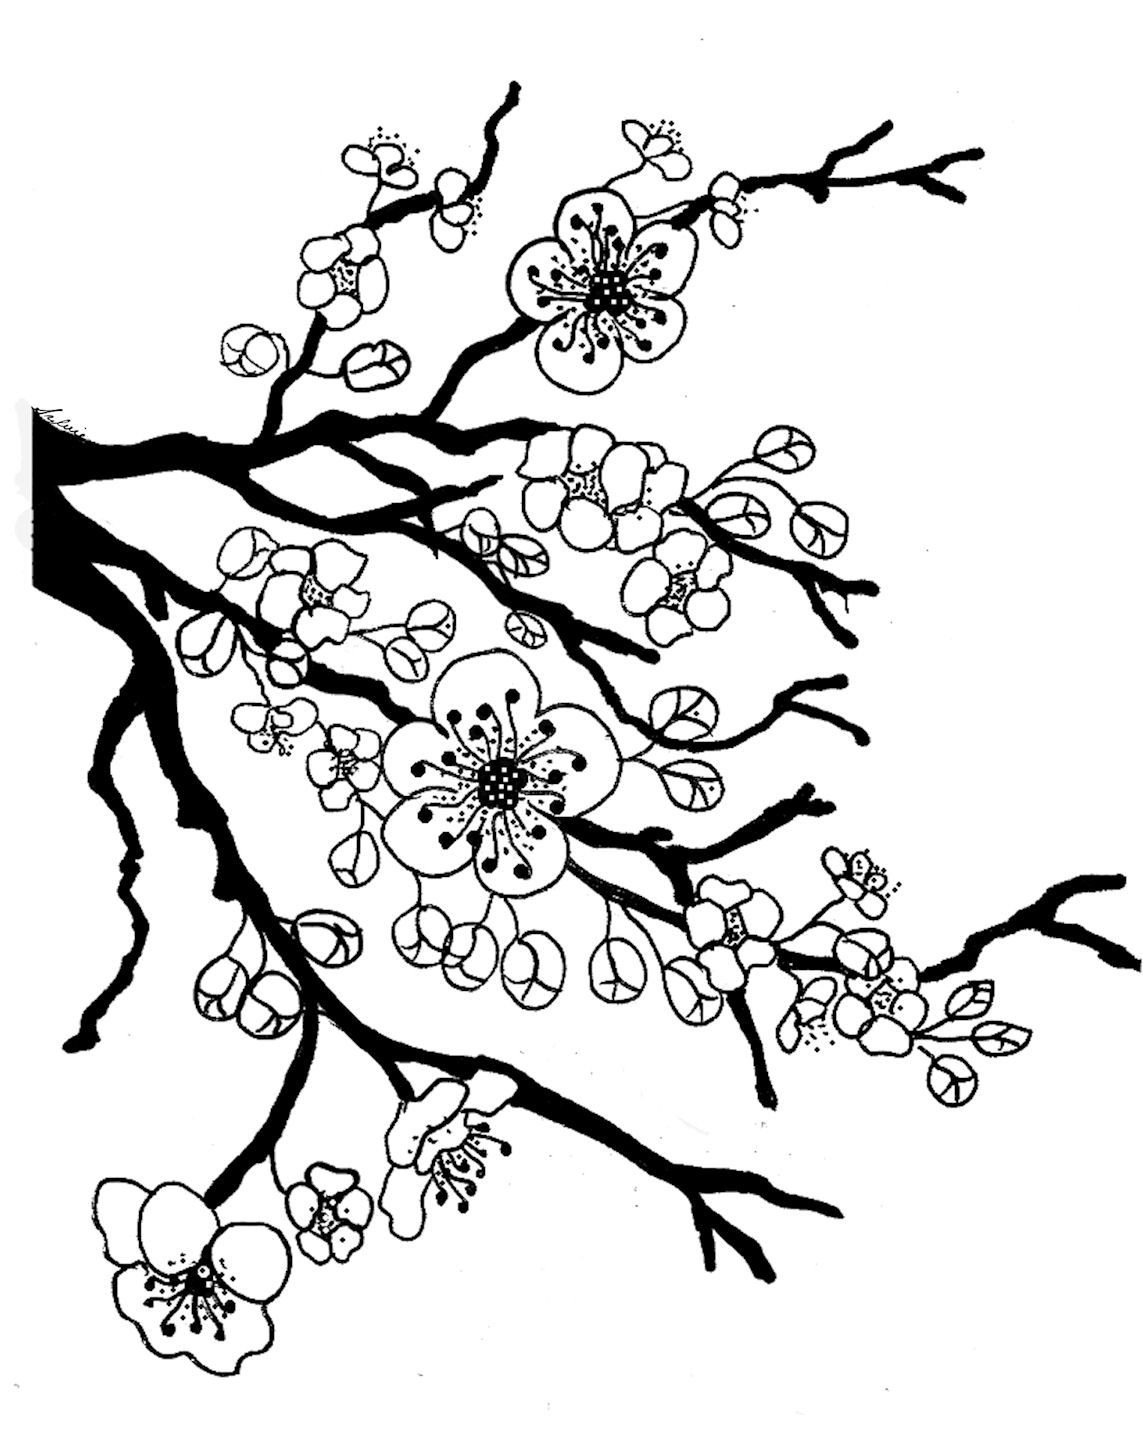 cherry blossom coloring pages cherry blossom tree drawing at getdrawings free download coloring cherry pages blossom